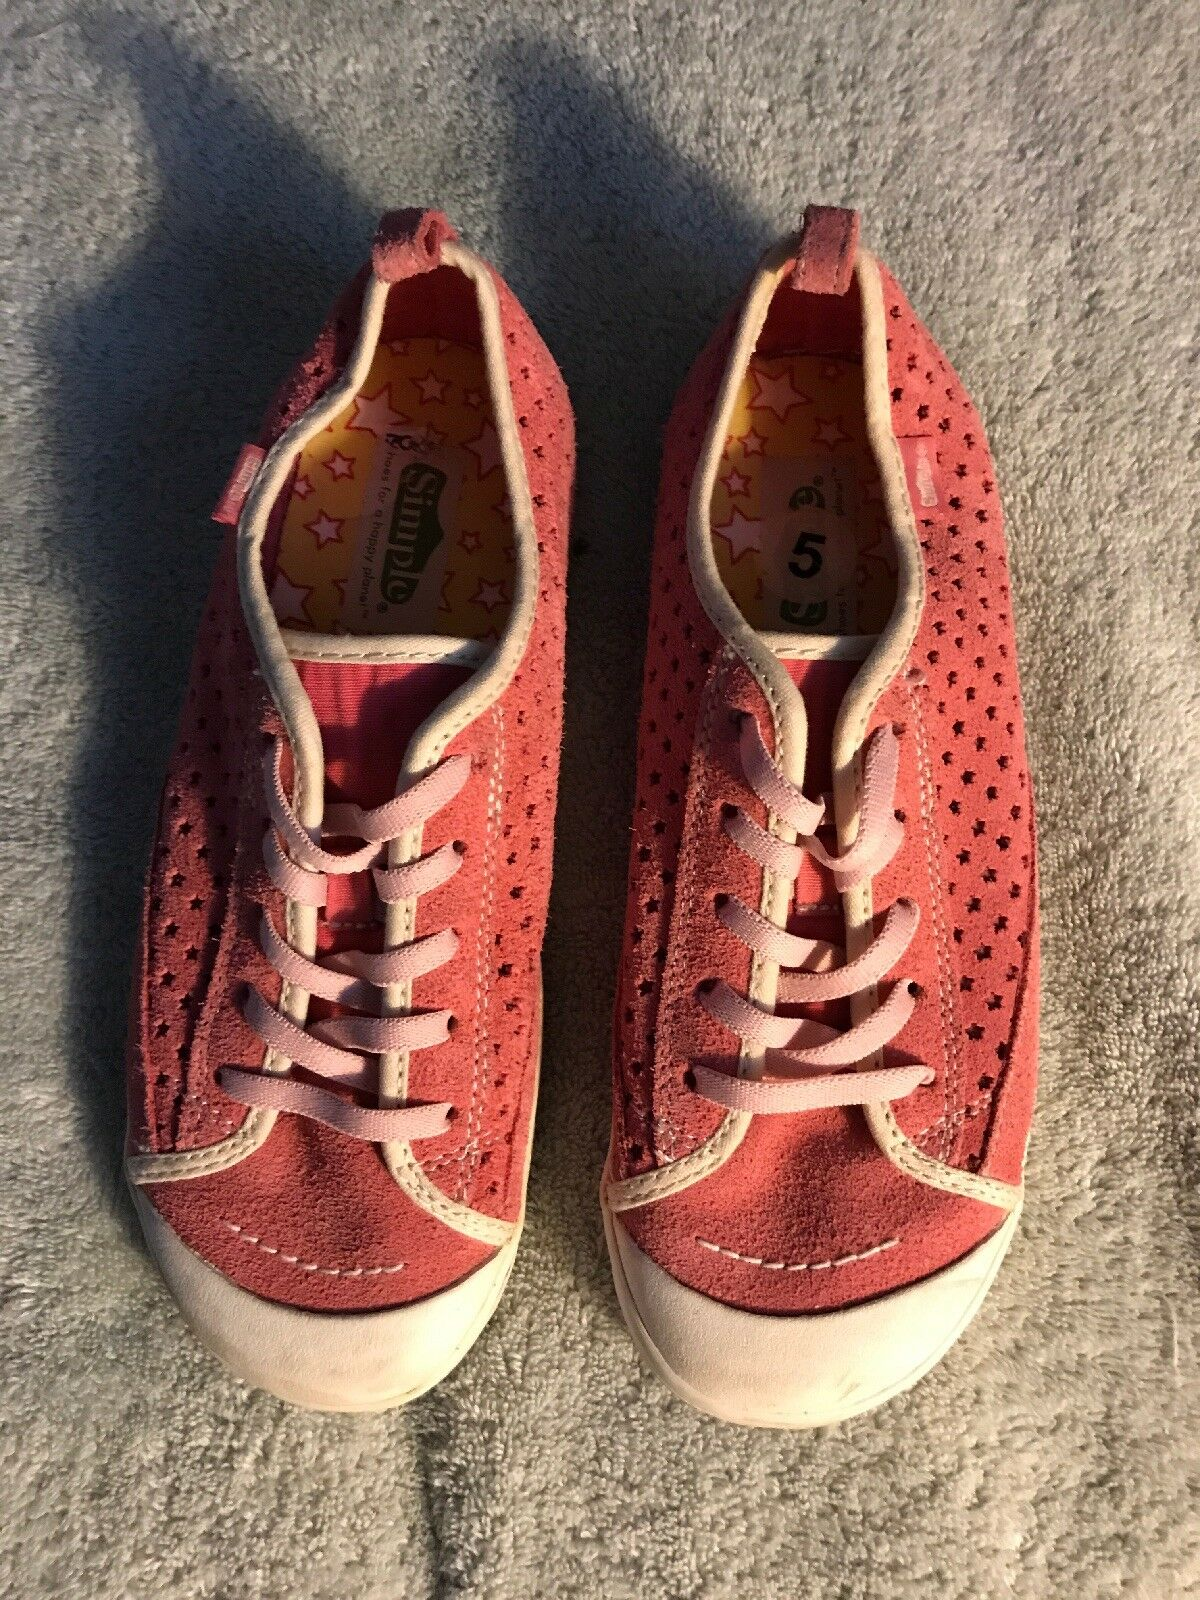 Simple Womens Pink On Suede Tennis Shoes Sneaker Casual Slip On Pink Sz 5 45c928